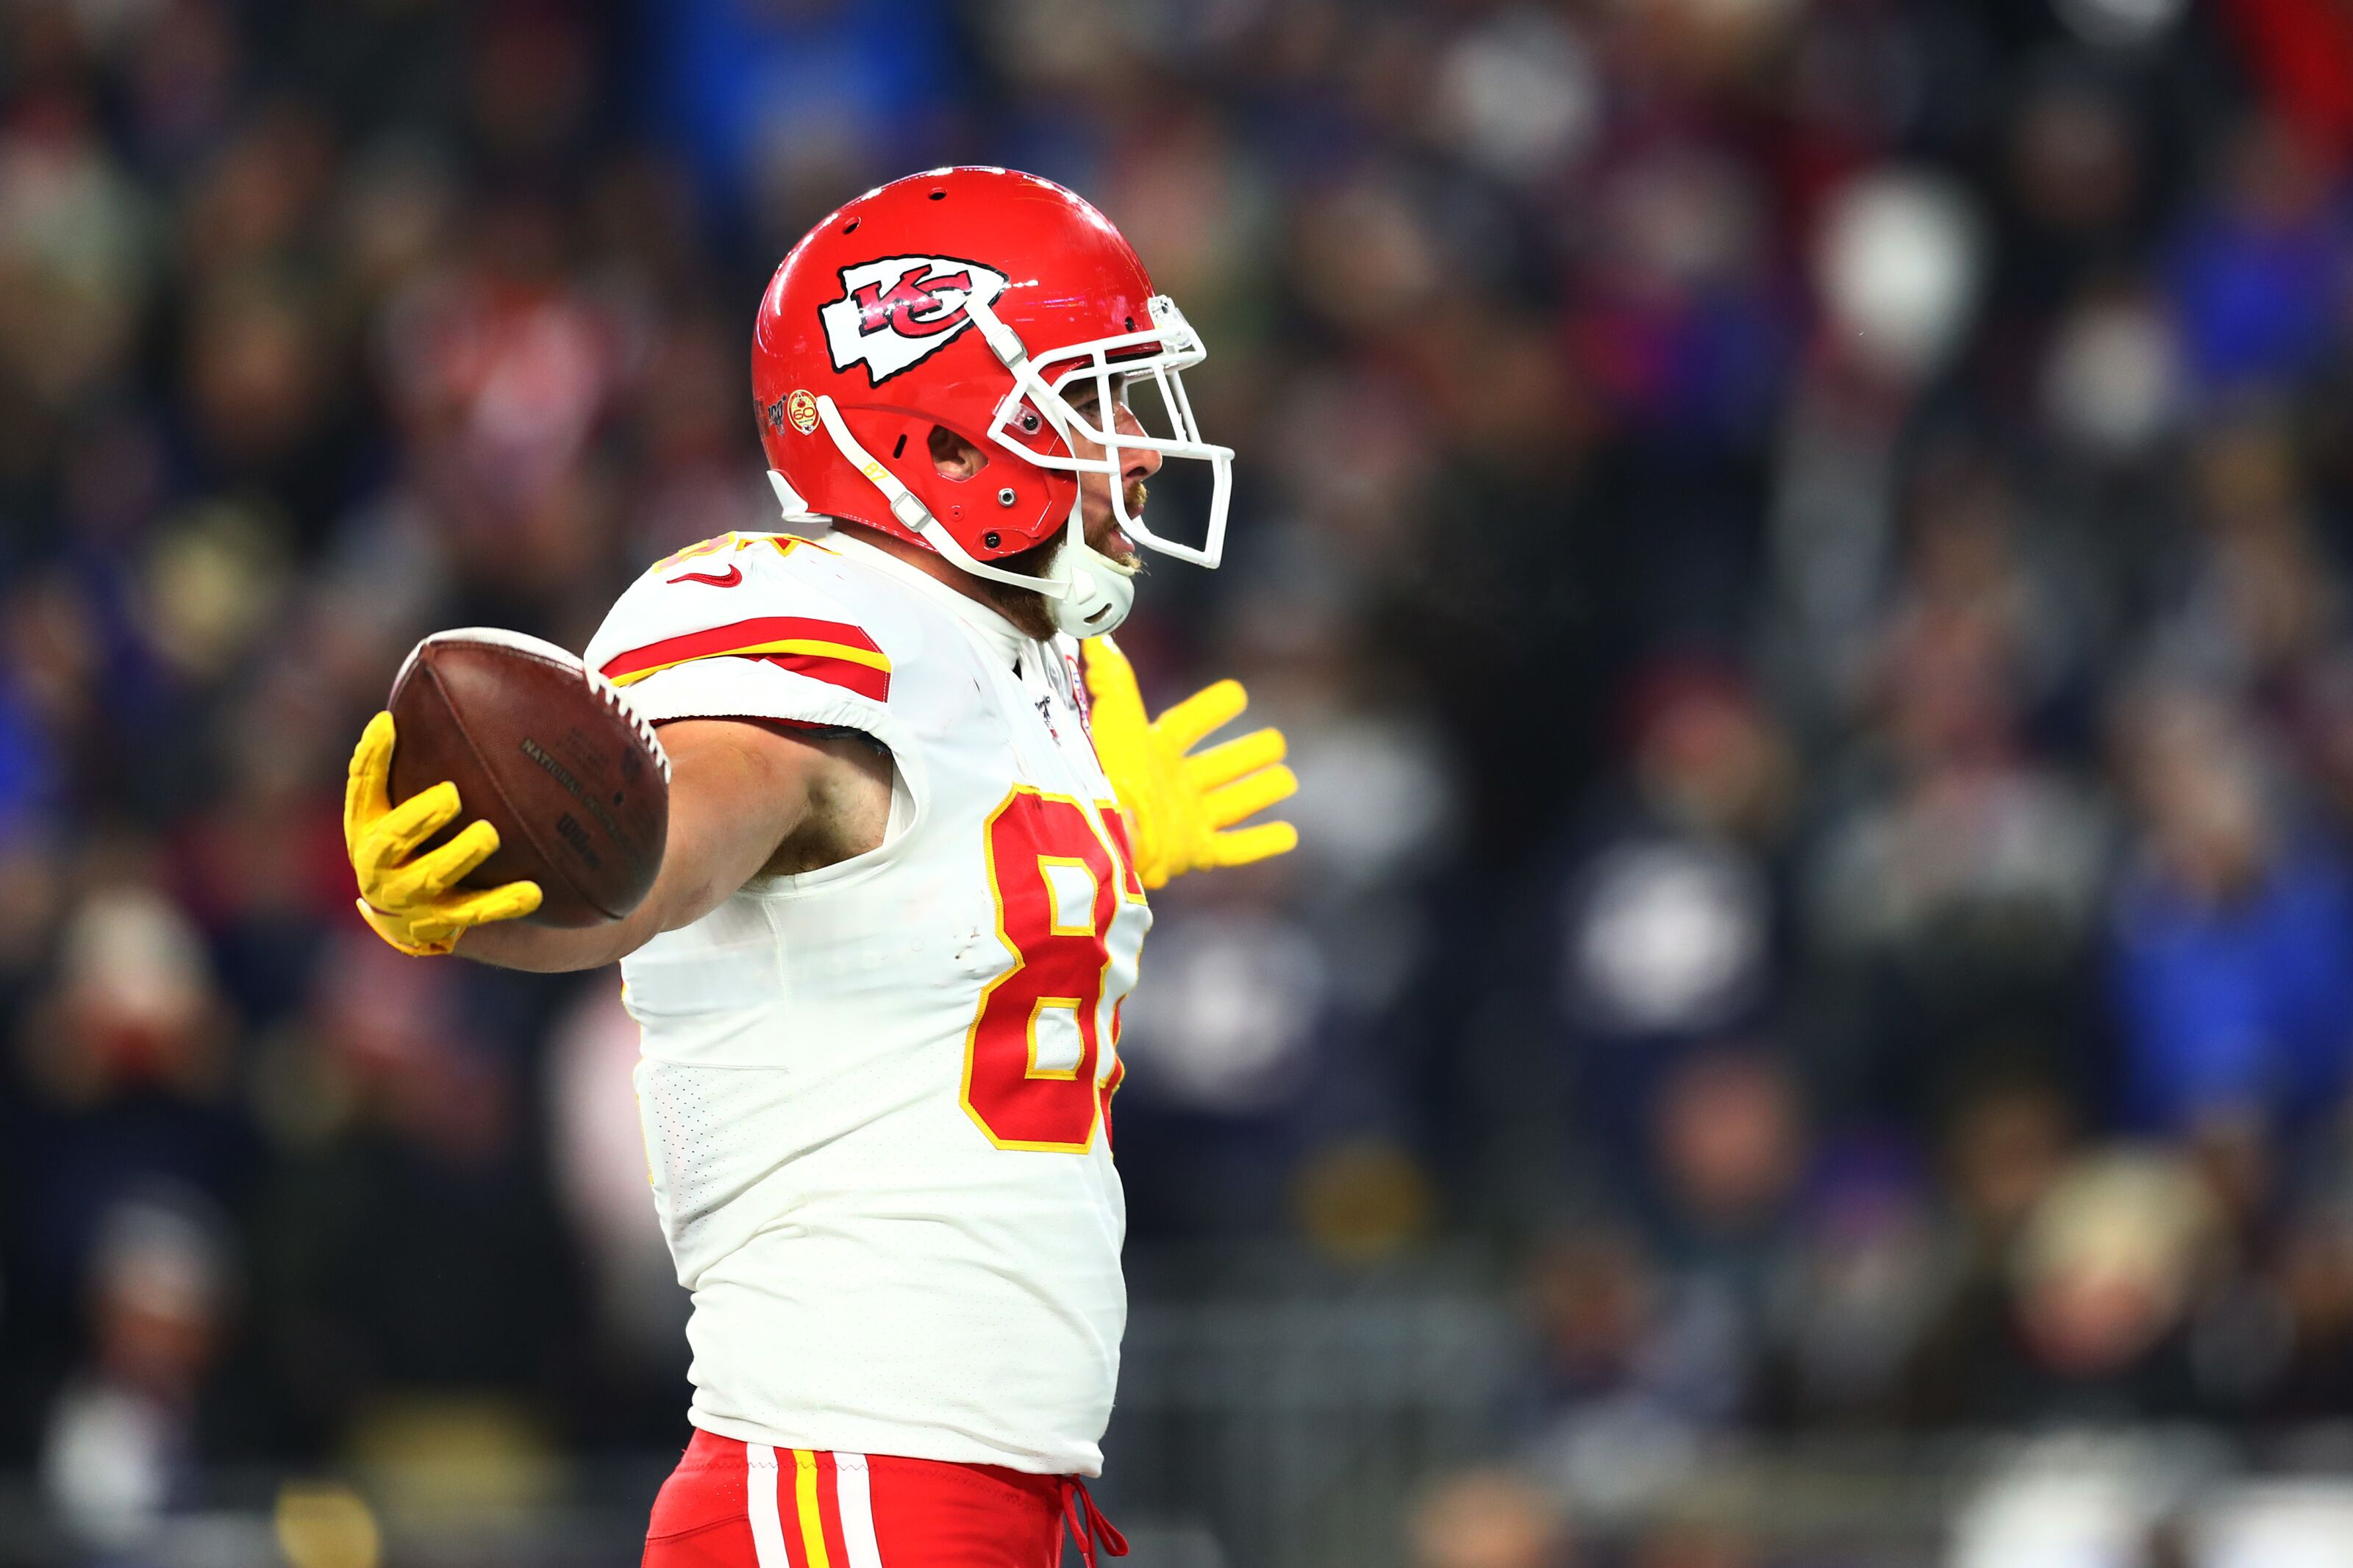 AFC stock reports: Kansas City Chiefs pass Houston Texans for 3rd seed